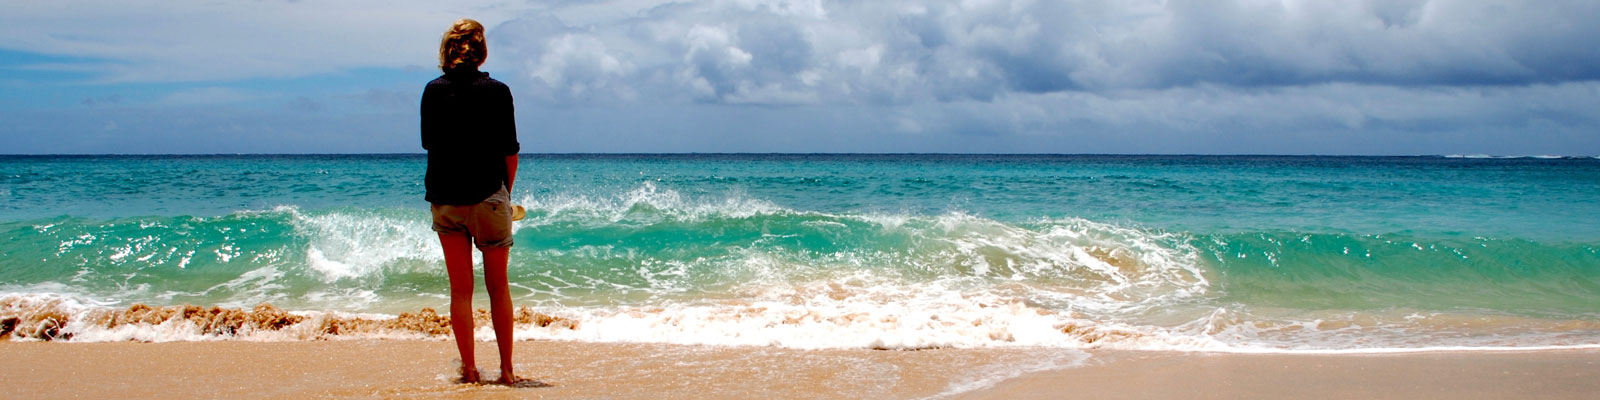 Vegan Traveler Blogs & Videos - Kauai Beach - Vegan Travel